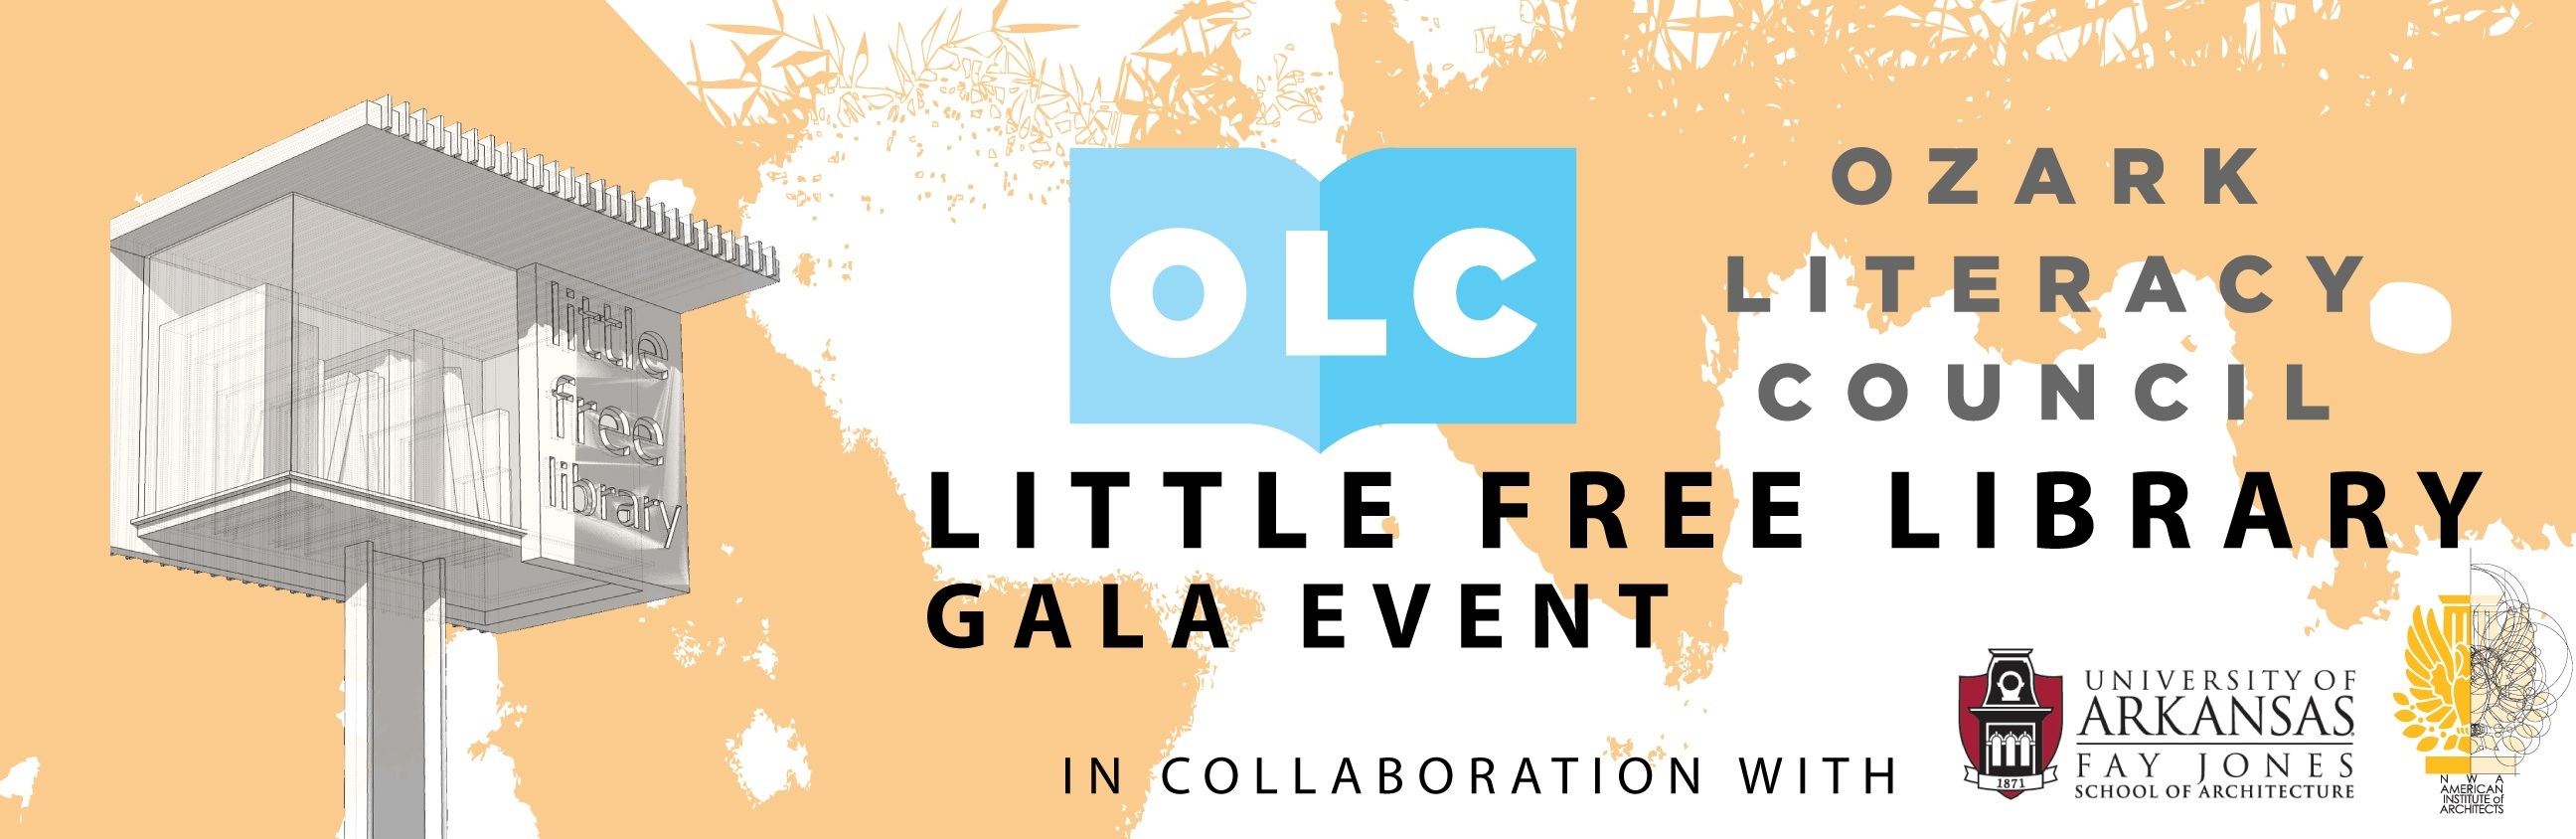 Little Free Library Gala